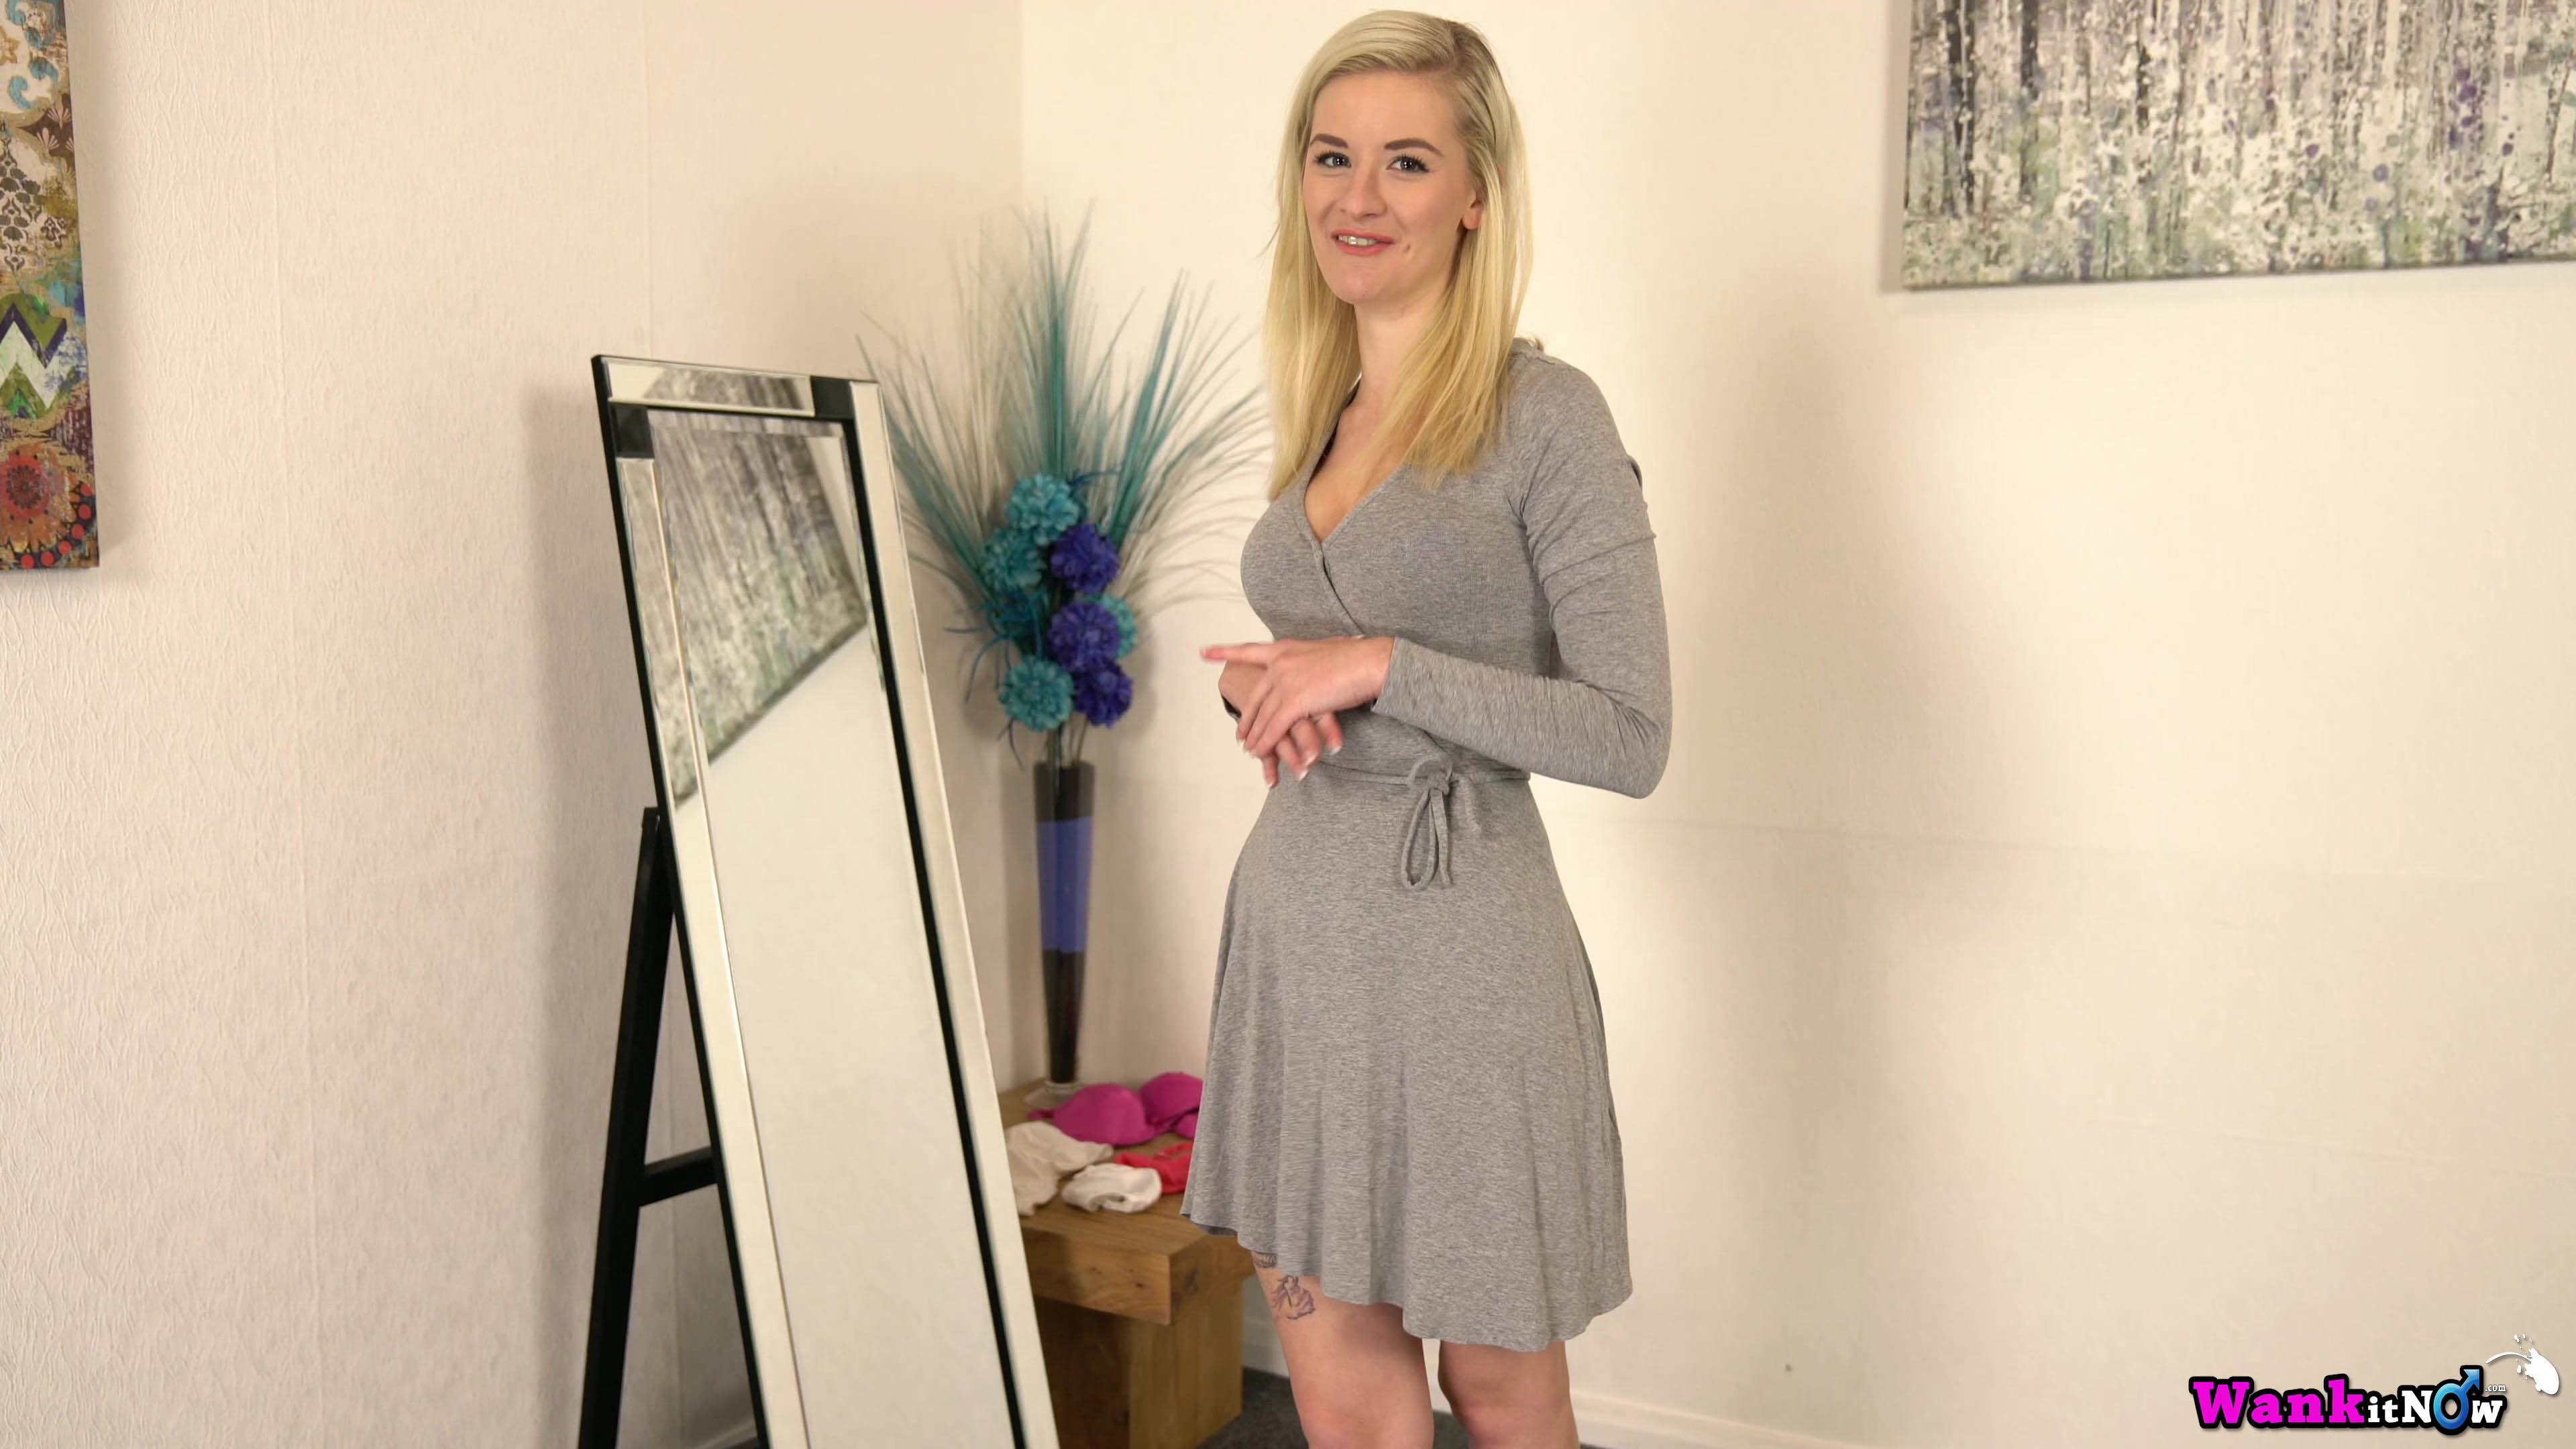 Wankitnow – slender british cutie grace puts off her new lingerie to tease in front of a mirror #3